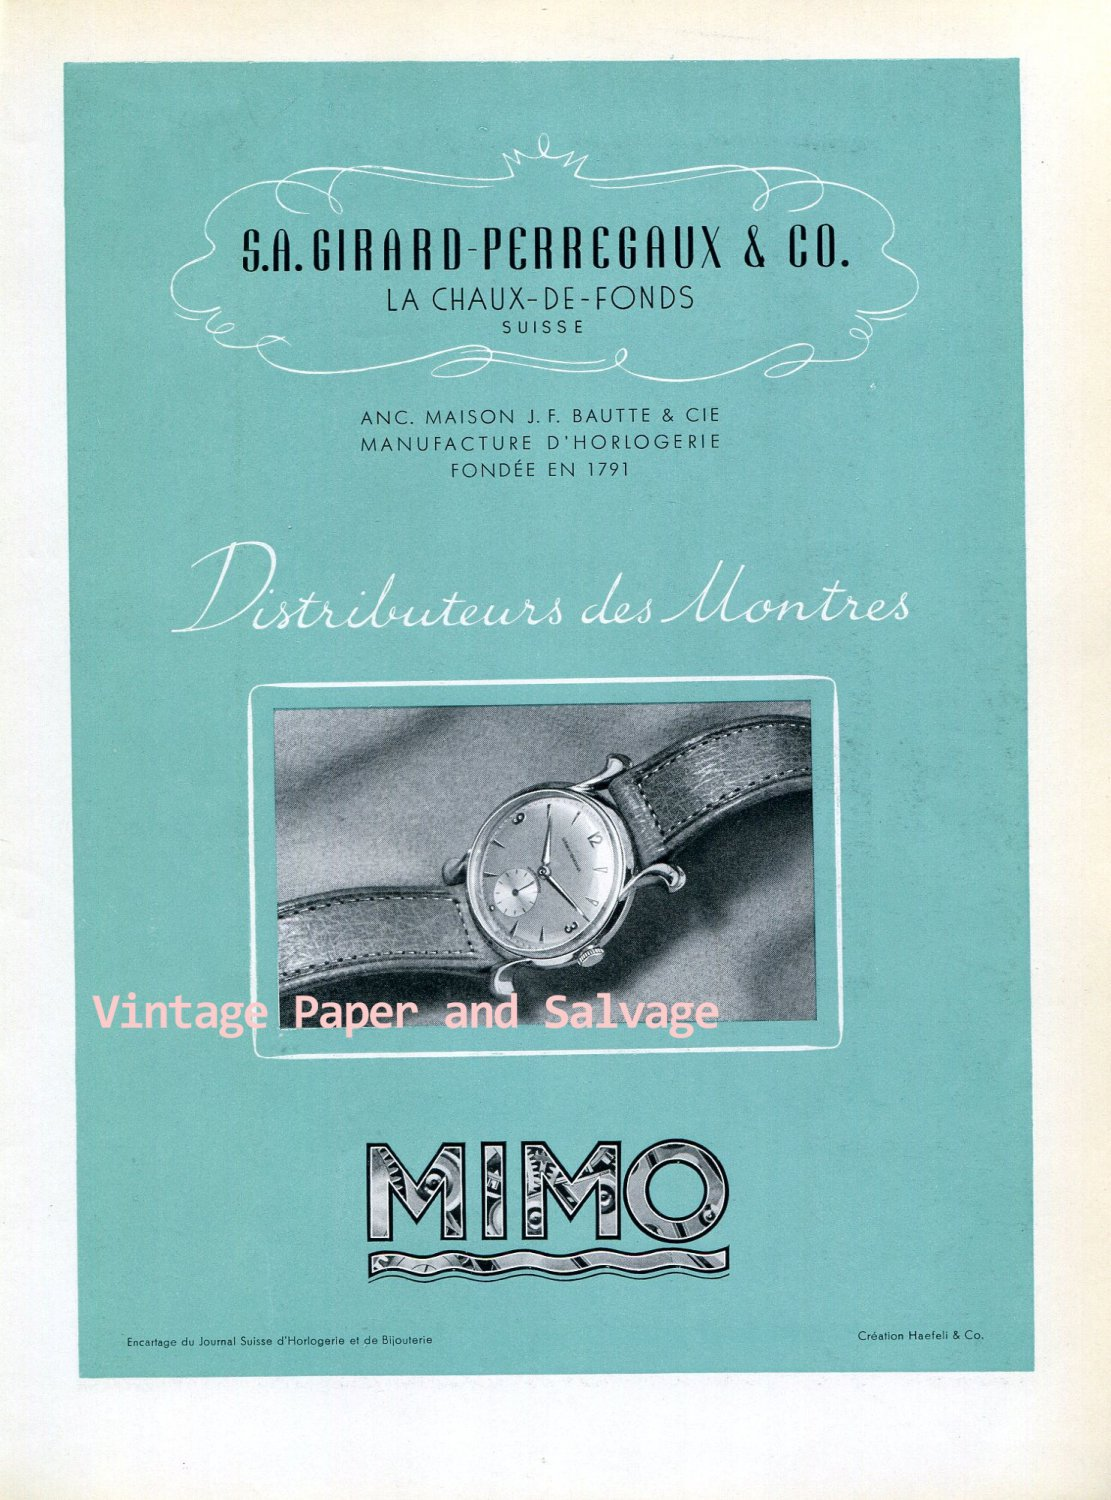 1945 Mimo Girard-Perregaux & Co Watch Company Switzerland 1940s Swiss Ad Advert Suisse Suiza